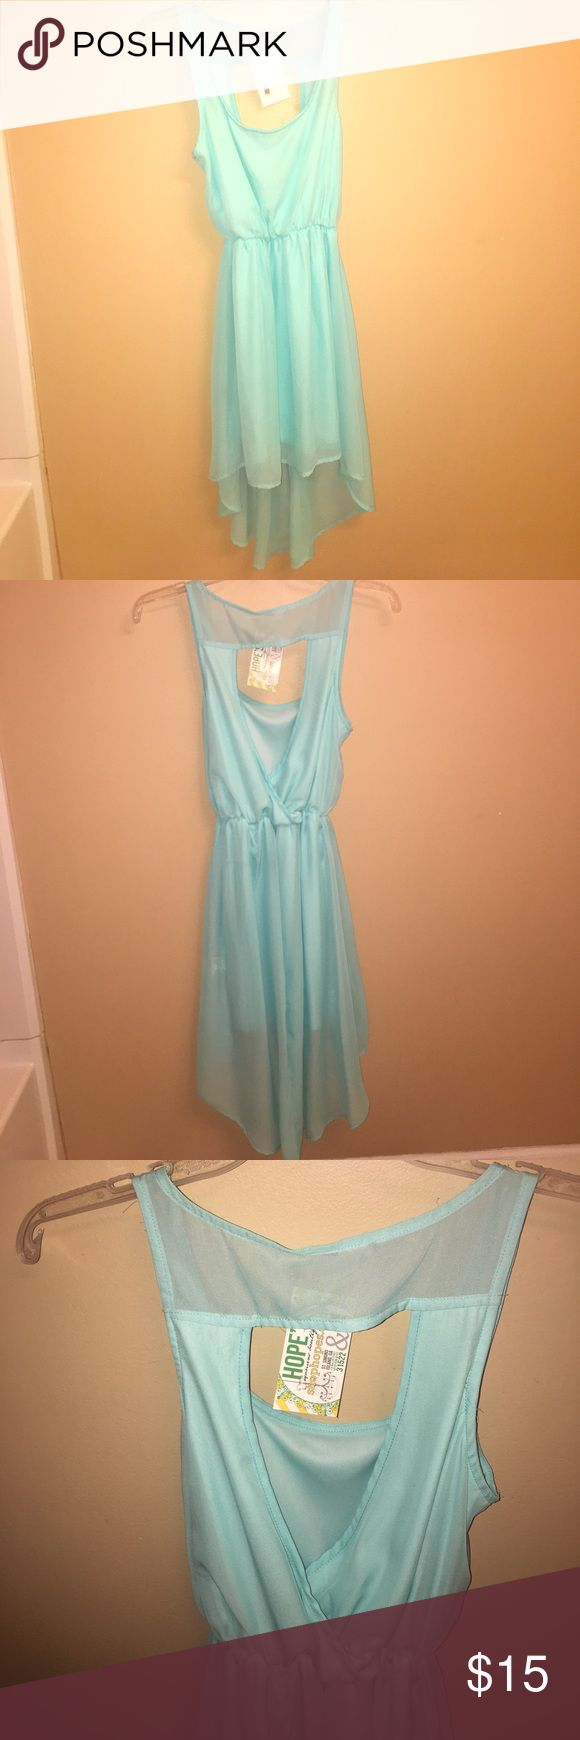 High-low pale blue dress High-low pale blue dress with a cut out back, never worn! Dresses High Low